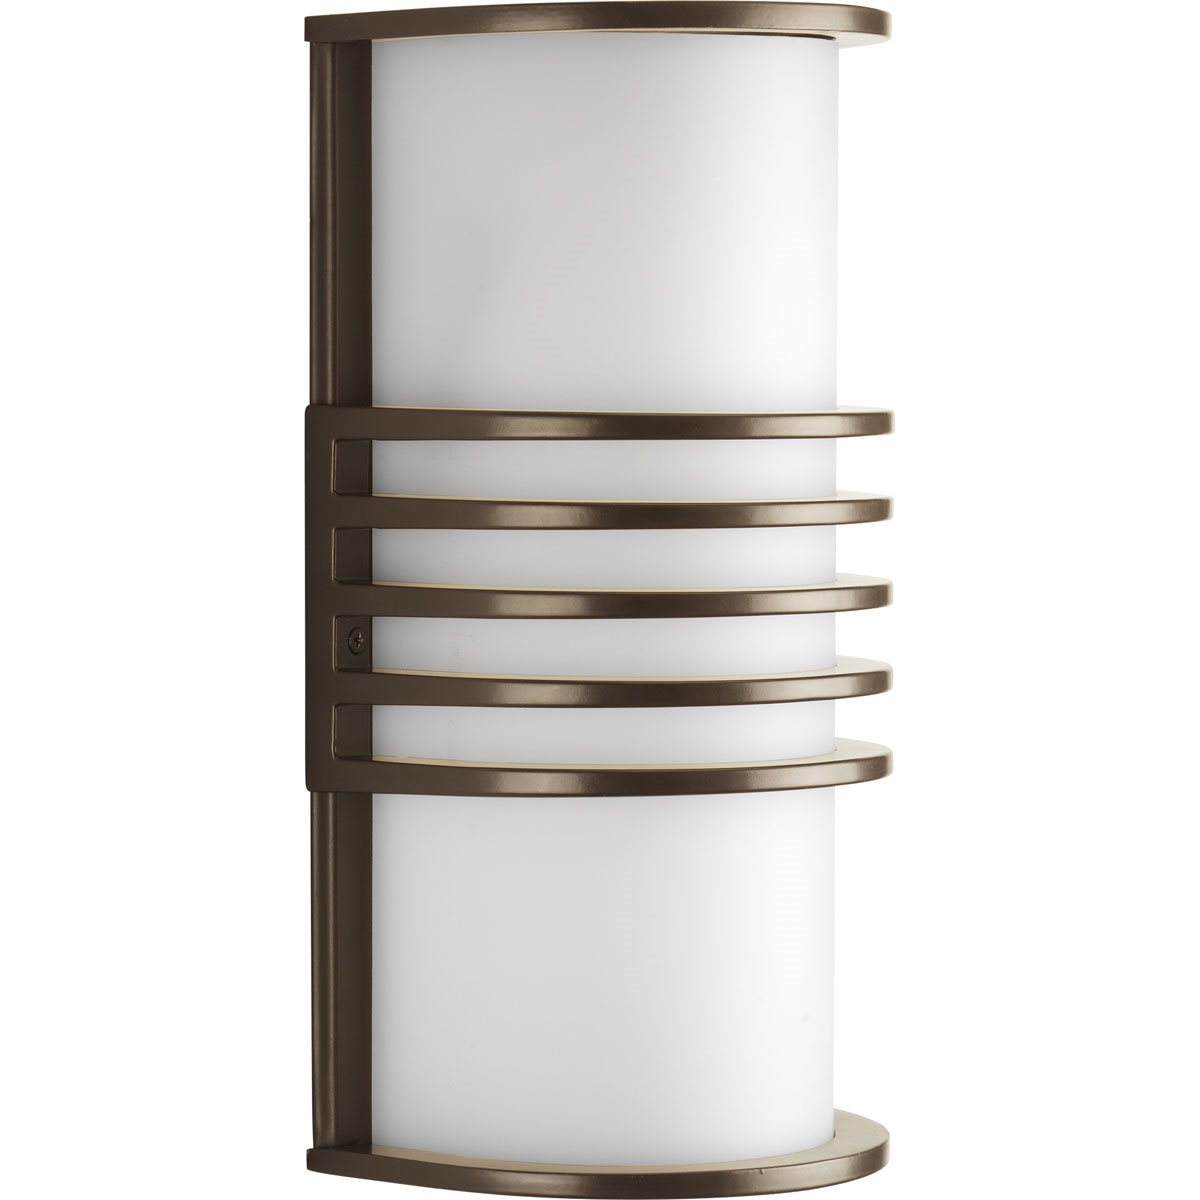 Efficient Lighting Interior Wall Sconce Lighting Fixture With Built In Switch : Progress Lighting P5914-20 Parker Transitional Outdoor Wall Sconce PG-P5914-20